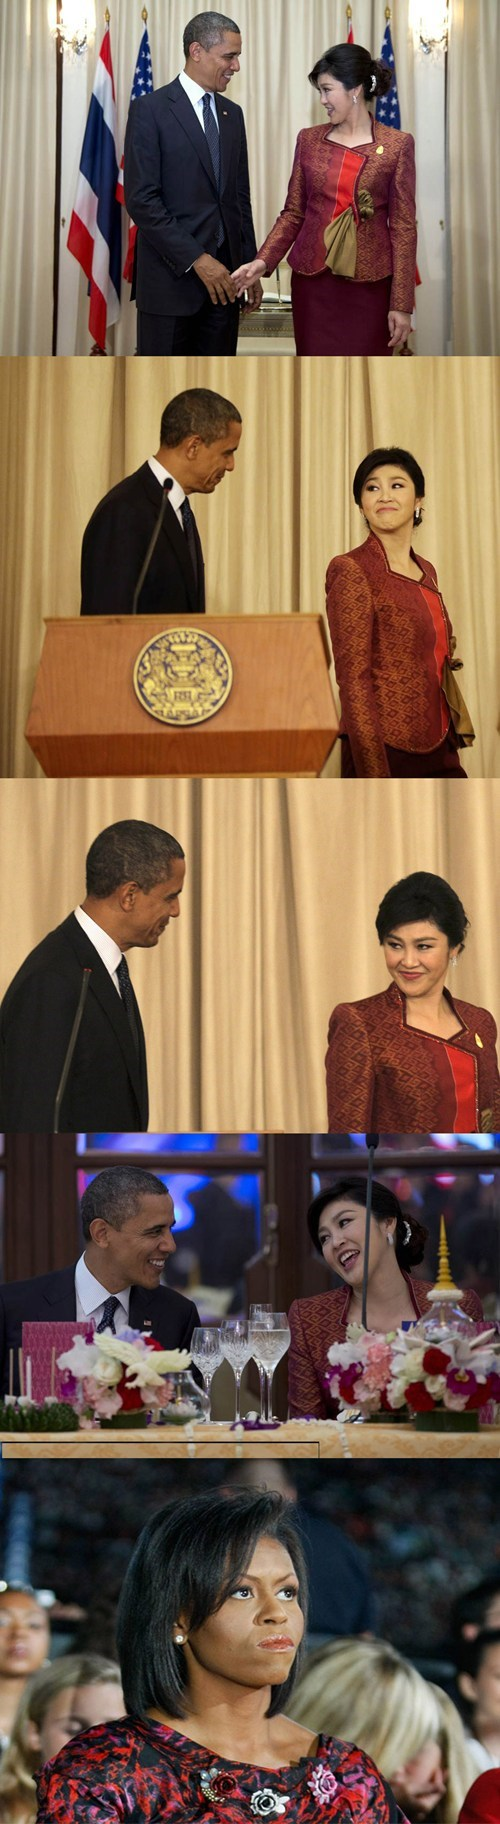 jealous,flirting,Yingluck Shinawatra,barack obama,angry,Michelle Obama